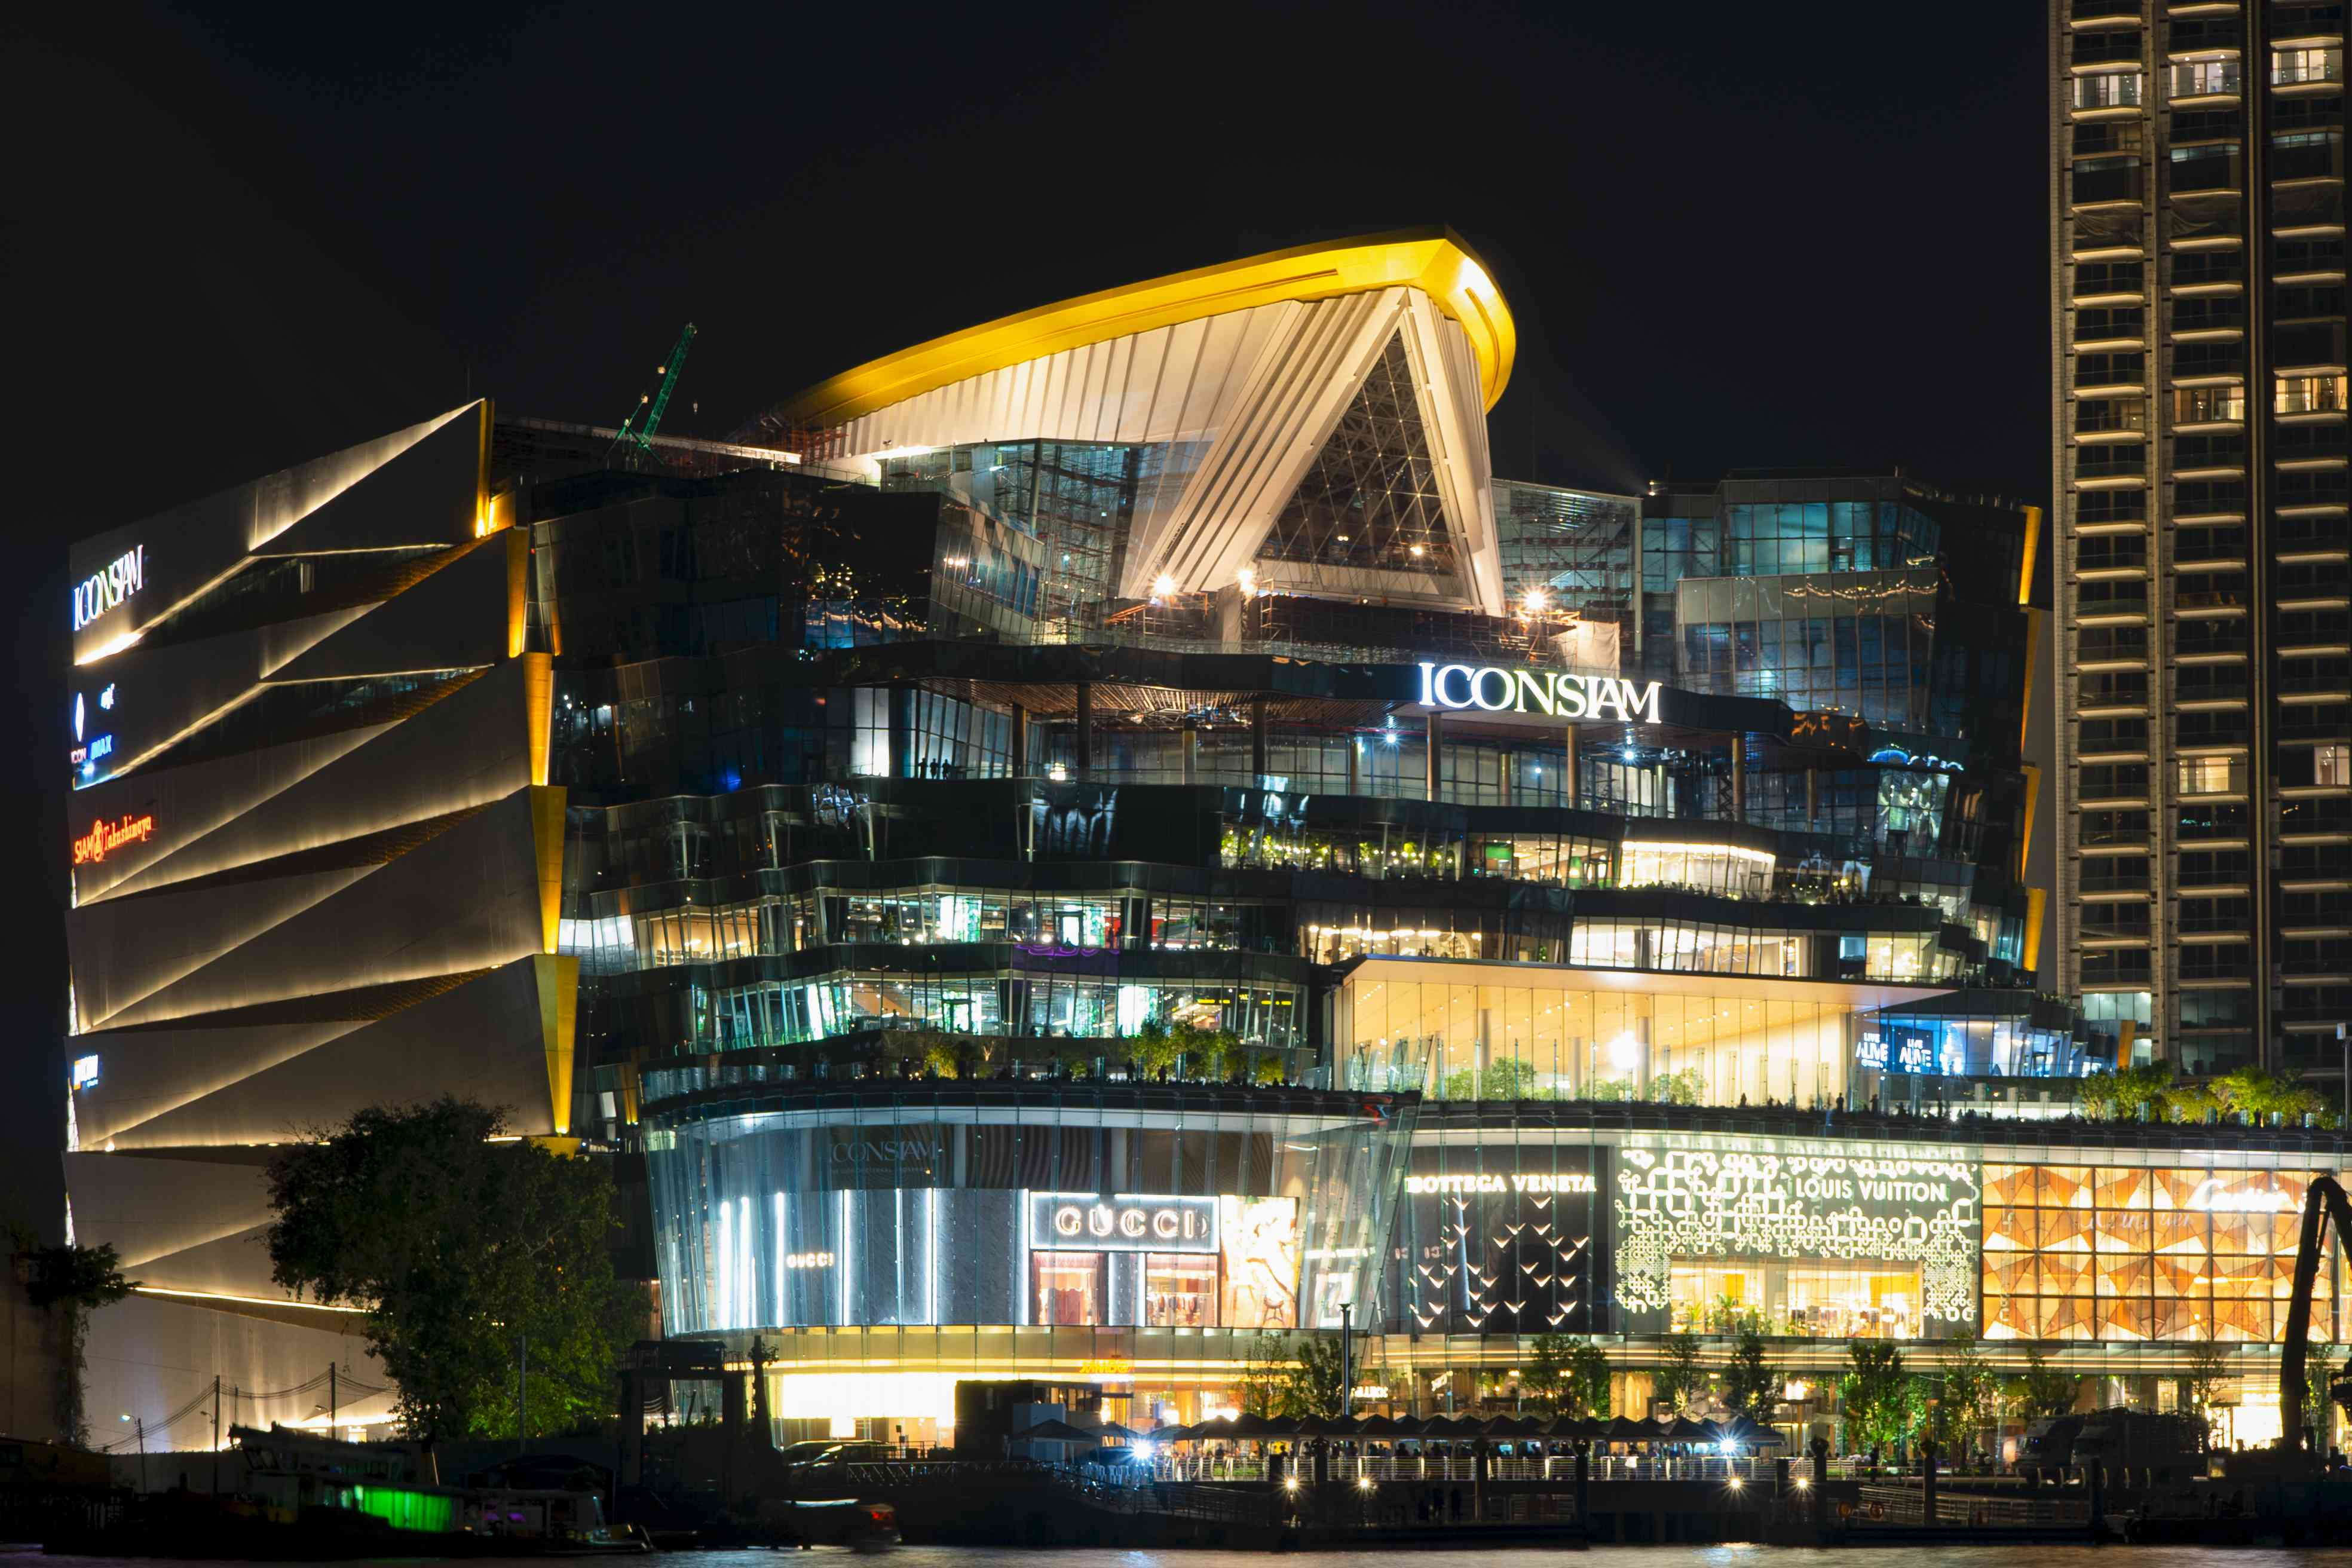 The IconSIAM mall in Bangkok